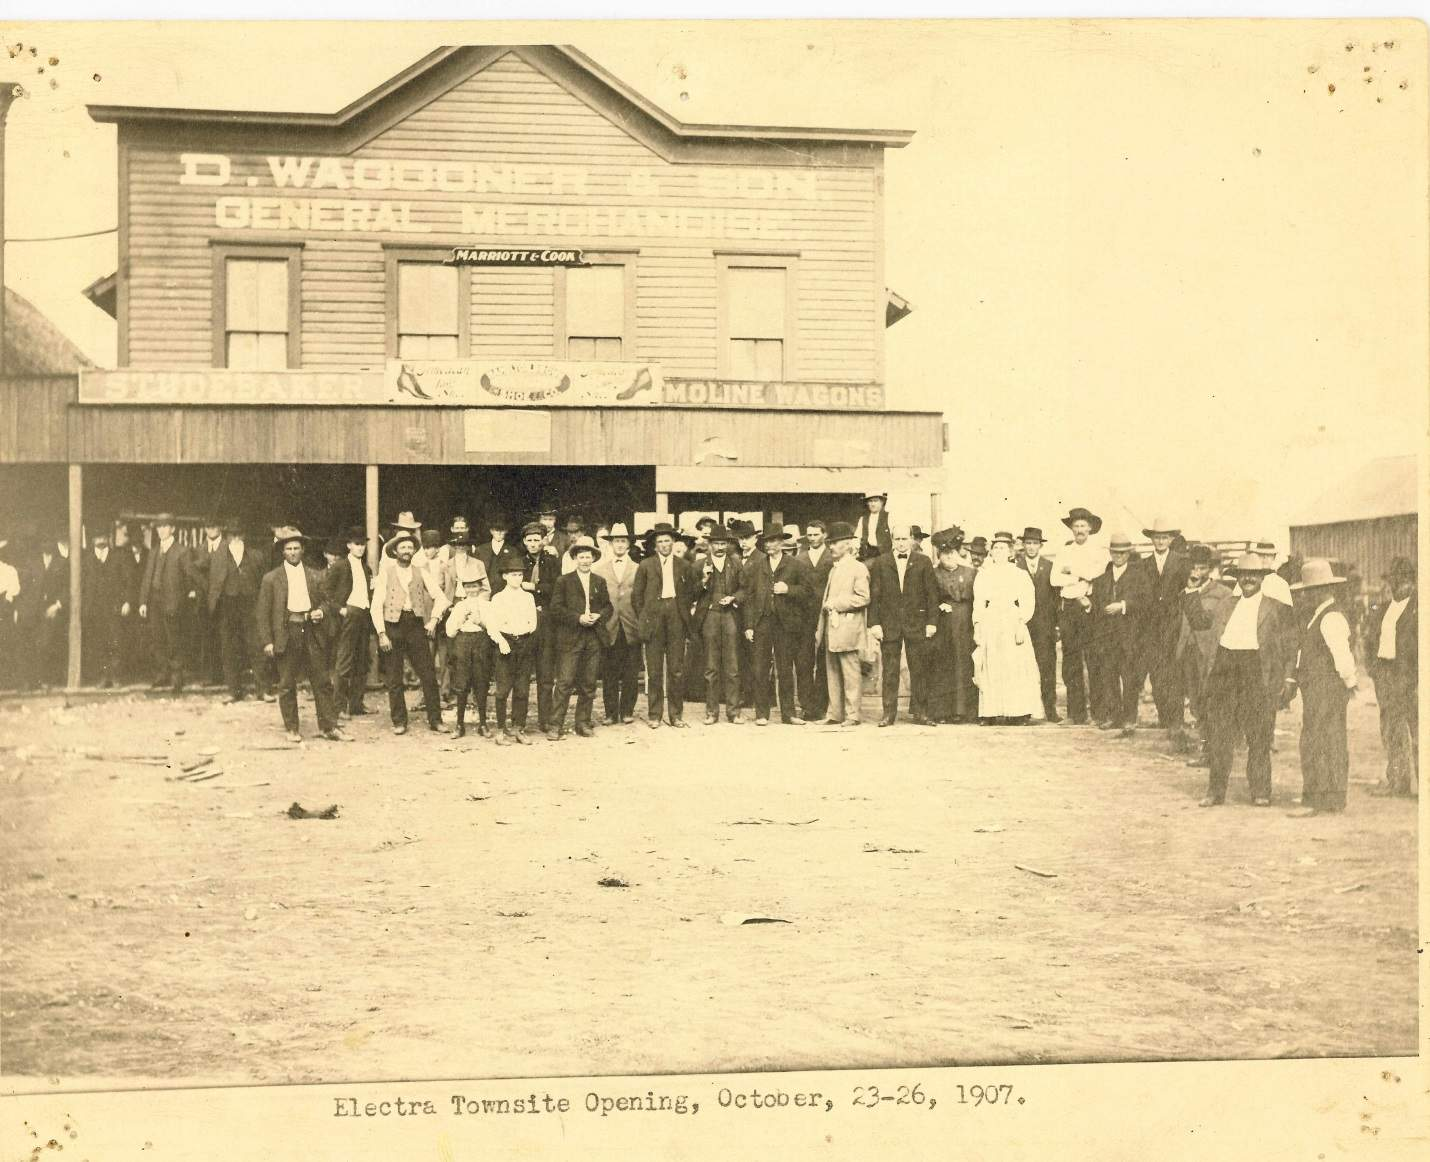 Photo of the Electra Town Site Opening in 1907